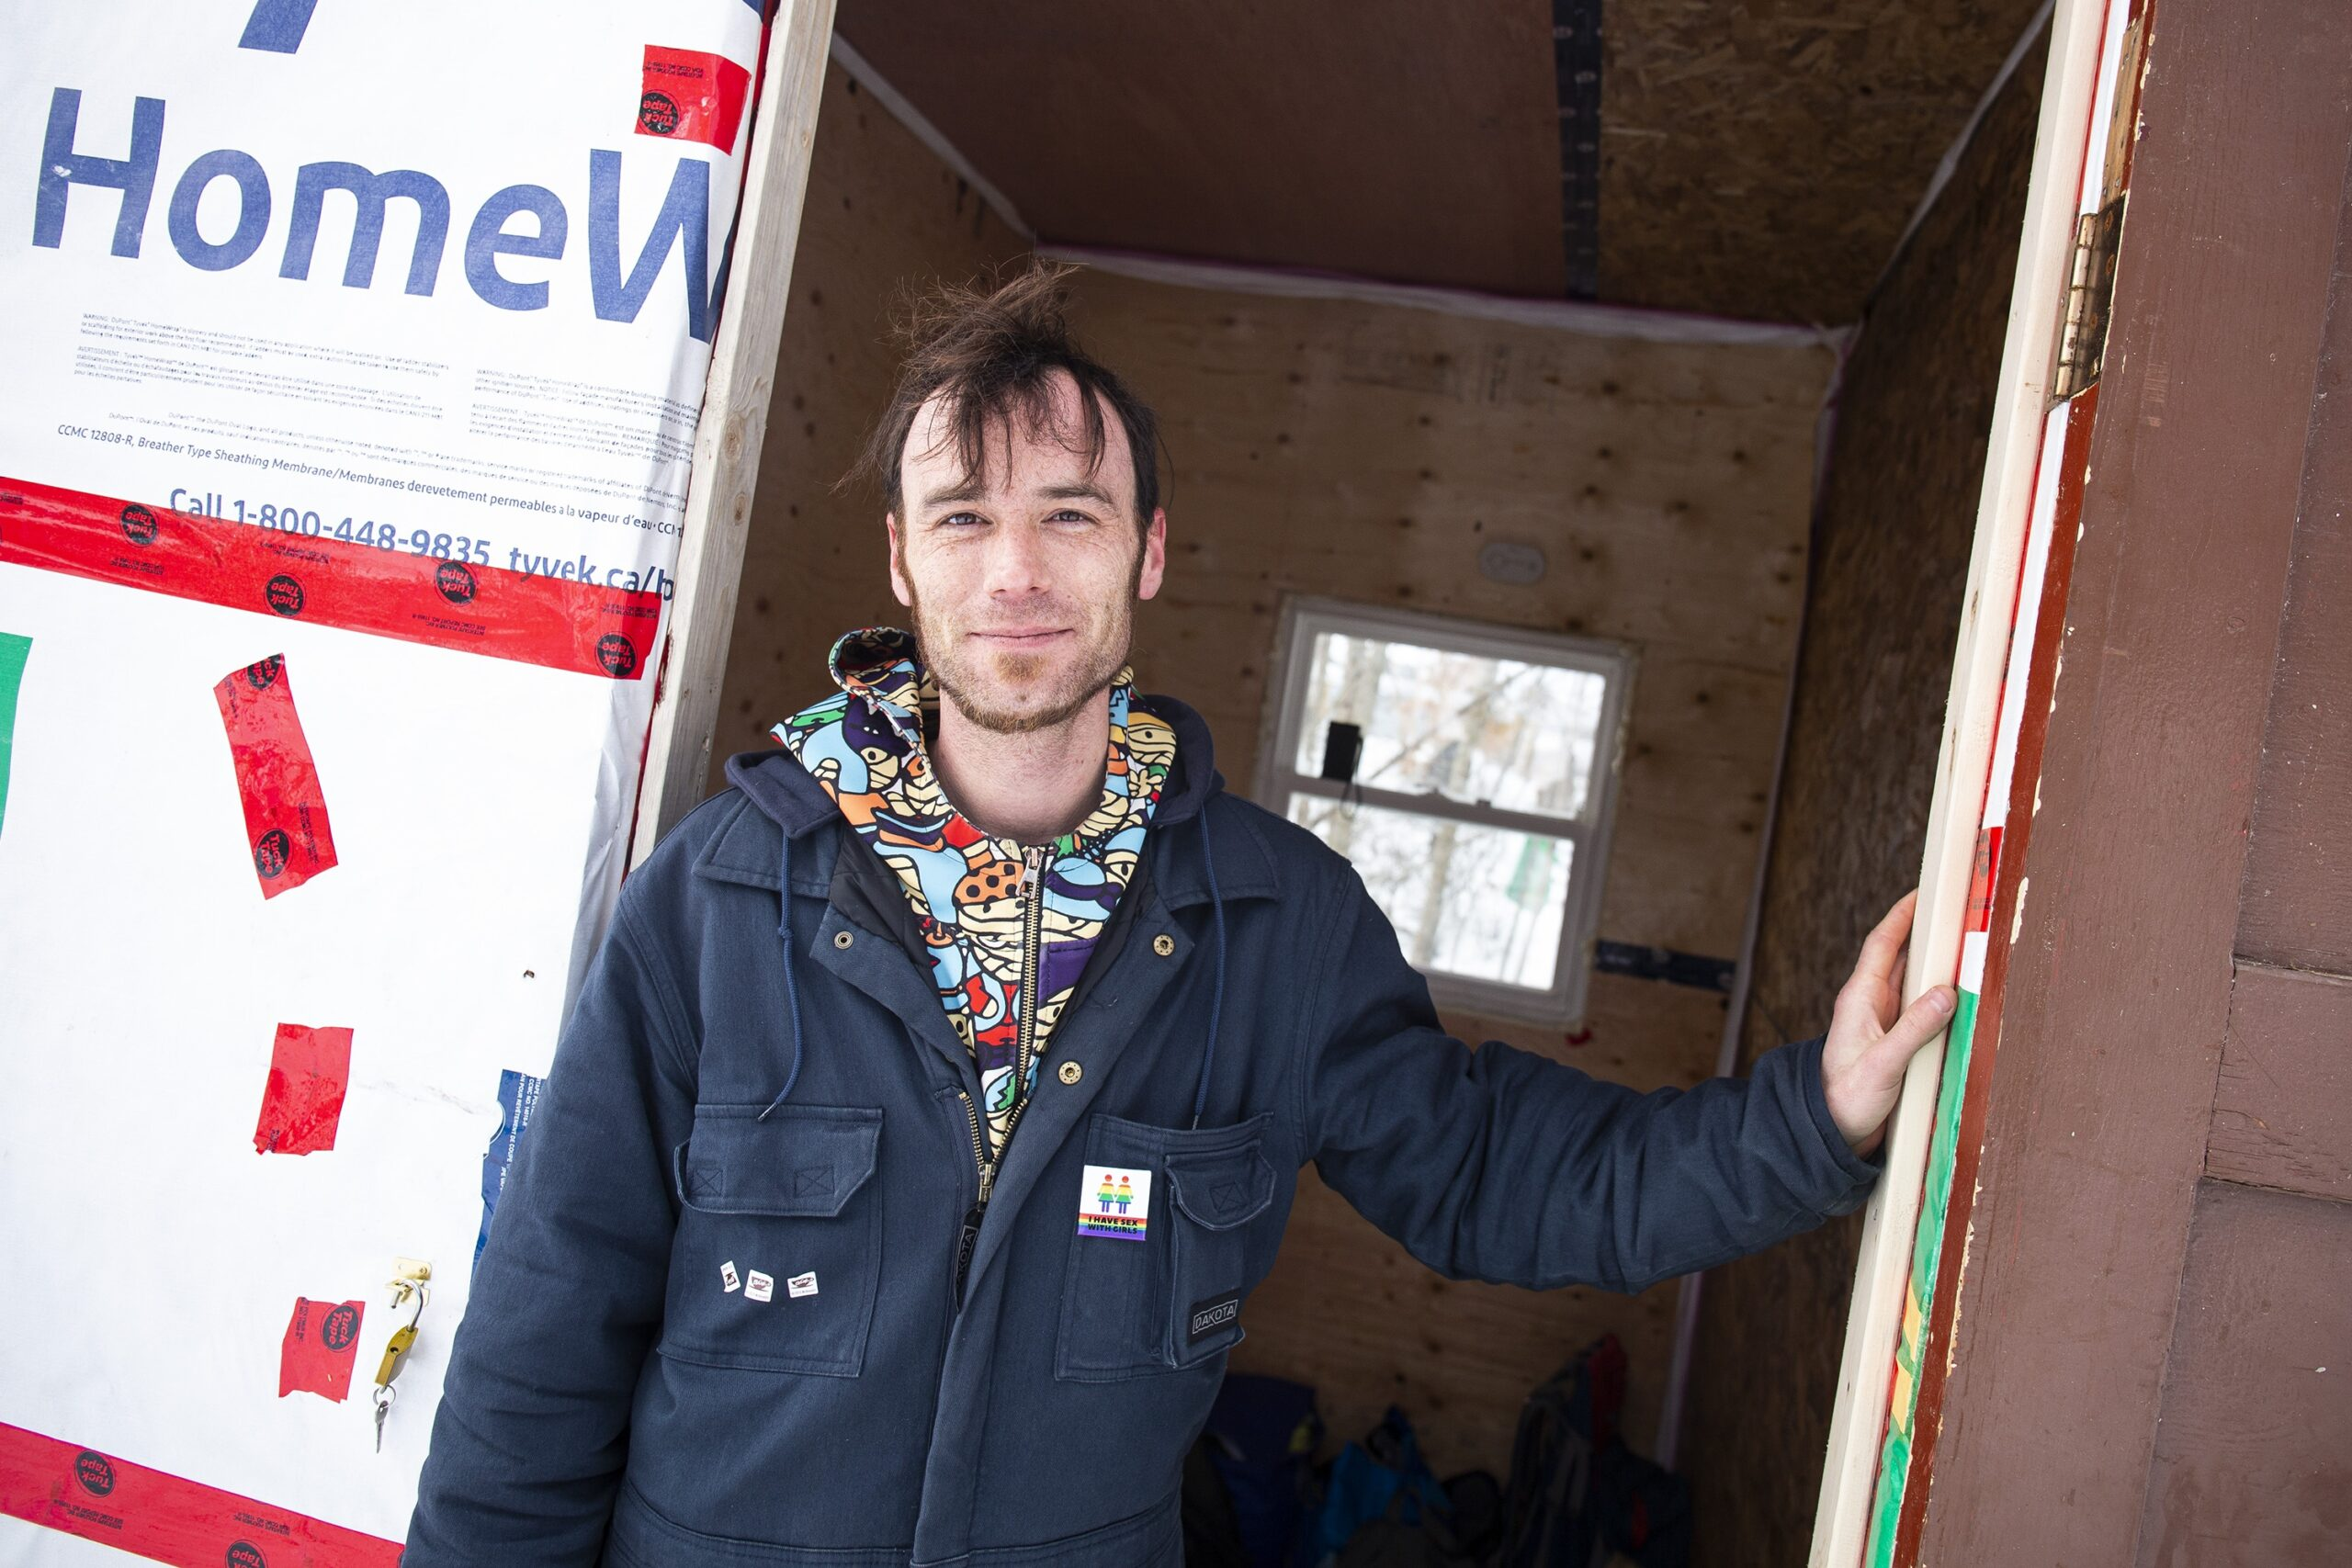 Man with a hand on the door jamb of an emergency shelter made of particle board and Tyvek.